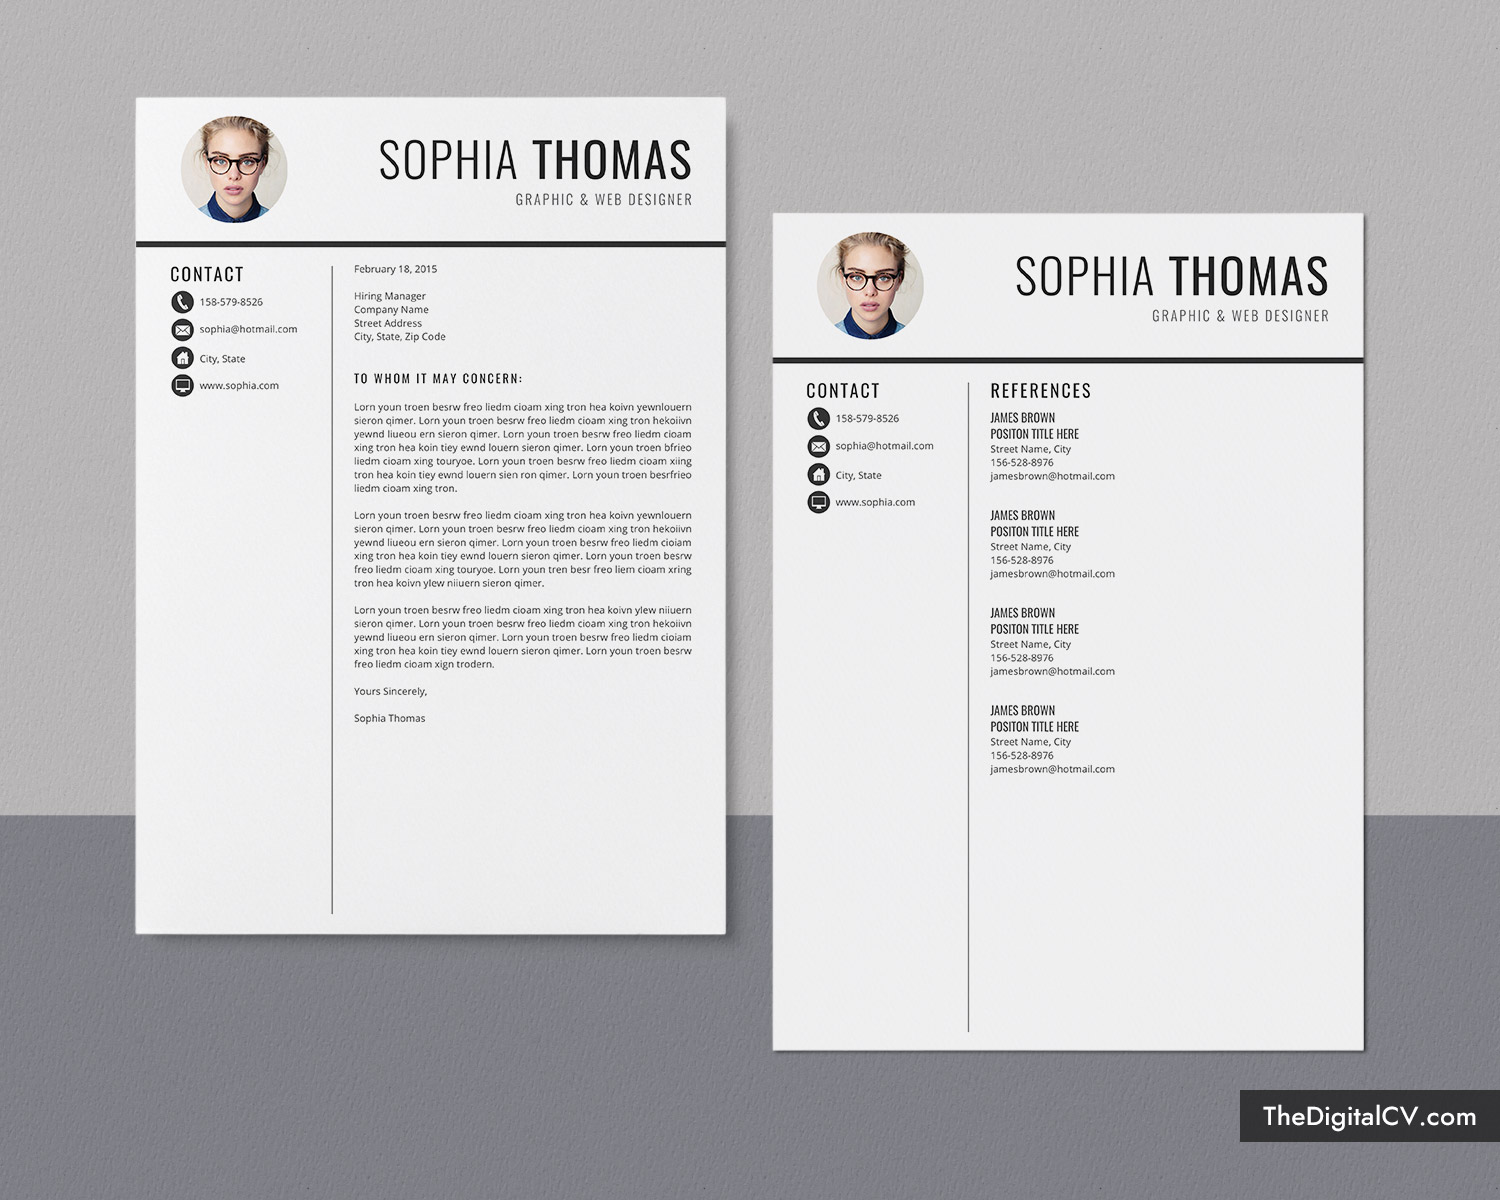 Resume formats for every stream namely computer science. Professional Resume Template Cv Template Curriculum Vitae Modern Resume Format Ms Word Resume Fresh Graduate Resume Template Student Resume Template 1 Page 2 Page 3 Page Resume Instant Download Thedigitalcv Com